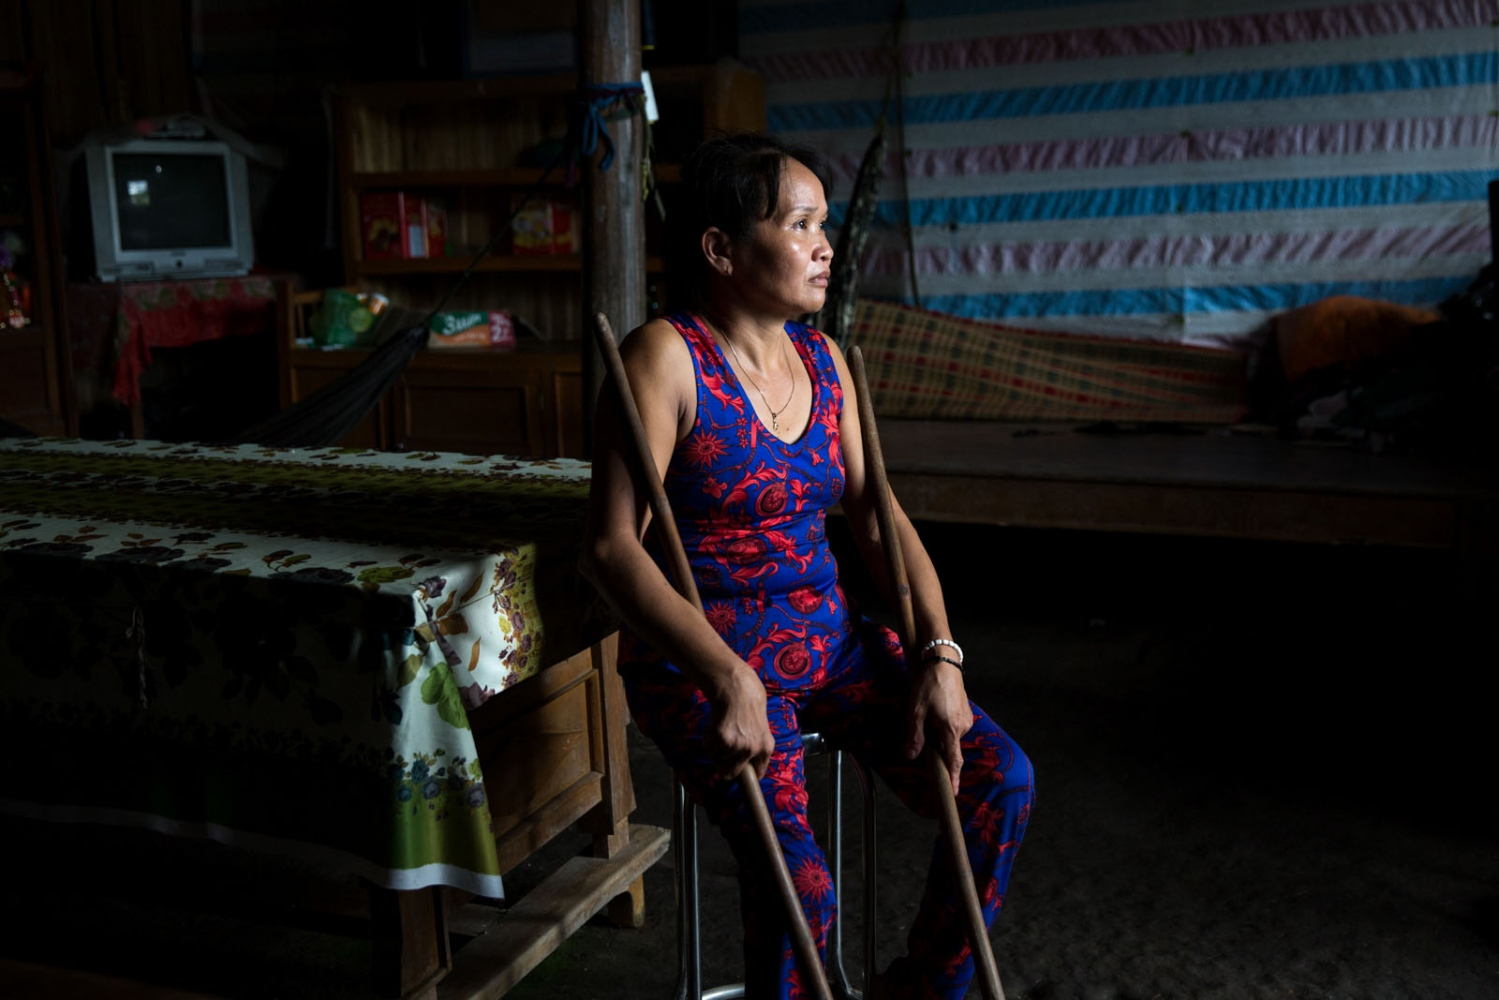 Ex-rice farmer Nguyen Tuyet Khanh sits in the main room of her house. She has been physically disabled since she was 3 years old which has made life as a farmer exceedingly difficult. Life was also made harder due to an increased salinity of her land which led to the rice crops failing. As a result, she switched to a type of water reed that grows well in brackish water and which can be dried and woven in to mats for extra income. At present, she is able to weave two mats a day and makes around US$1 profit per day from selling them. But even now the reed is becoming more fragile due to too much rain and she is unable to harvest the reed in the rainy season anymore.